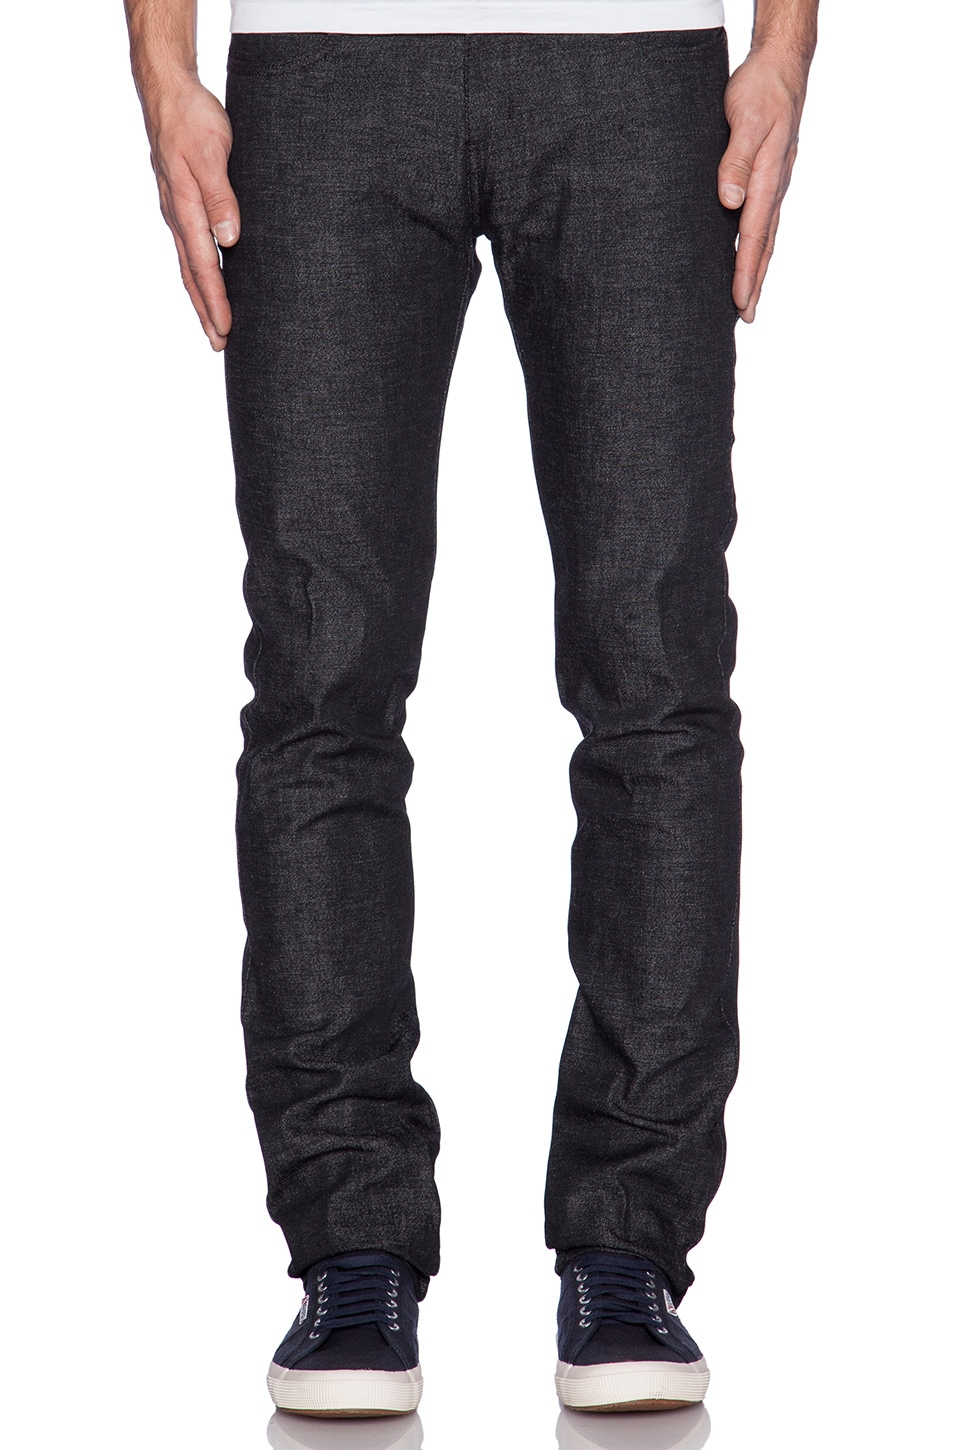 Naked & Famous Denim Super Skinny Guy 12oz Grandrelle Denim in Black